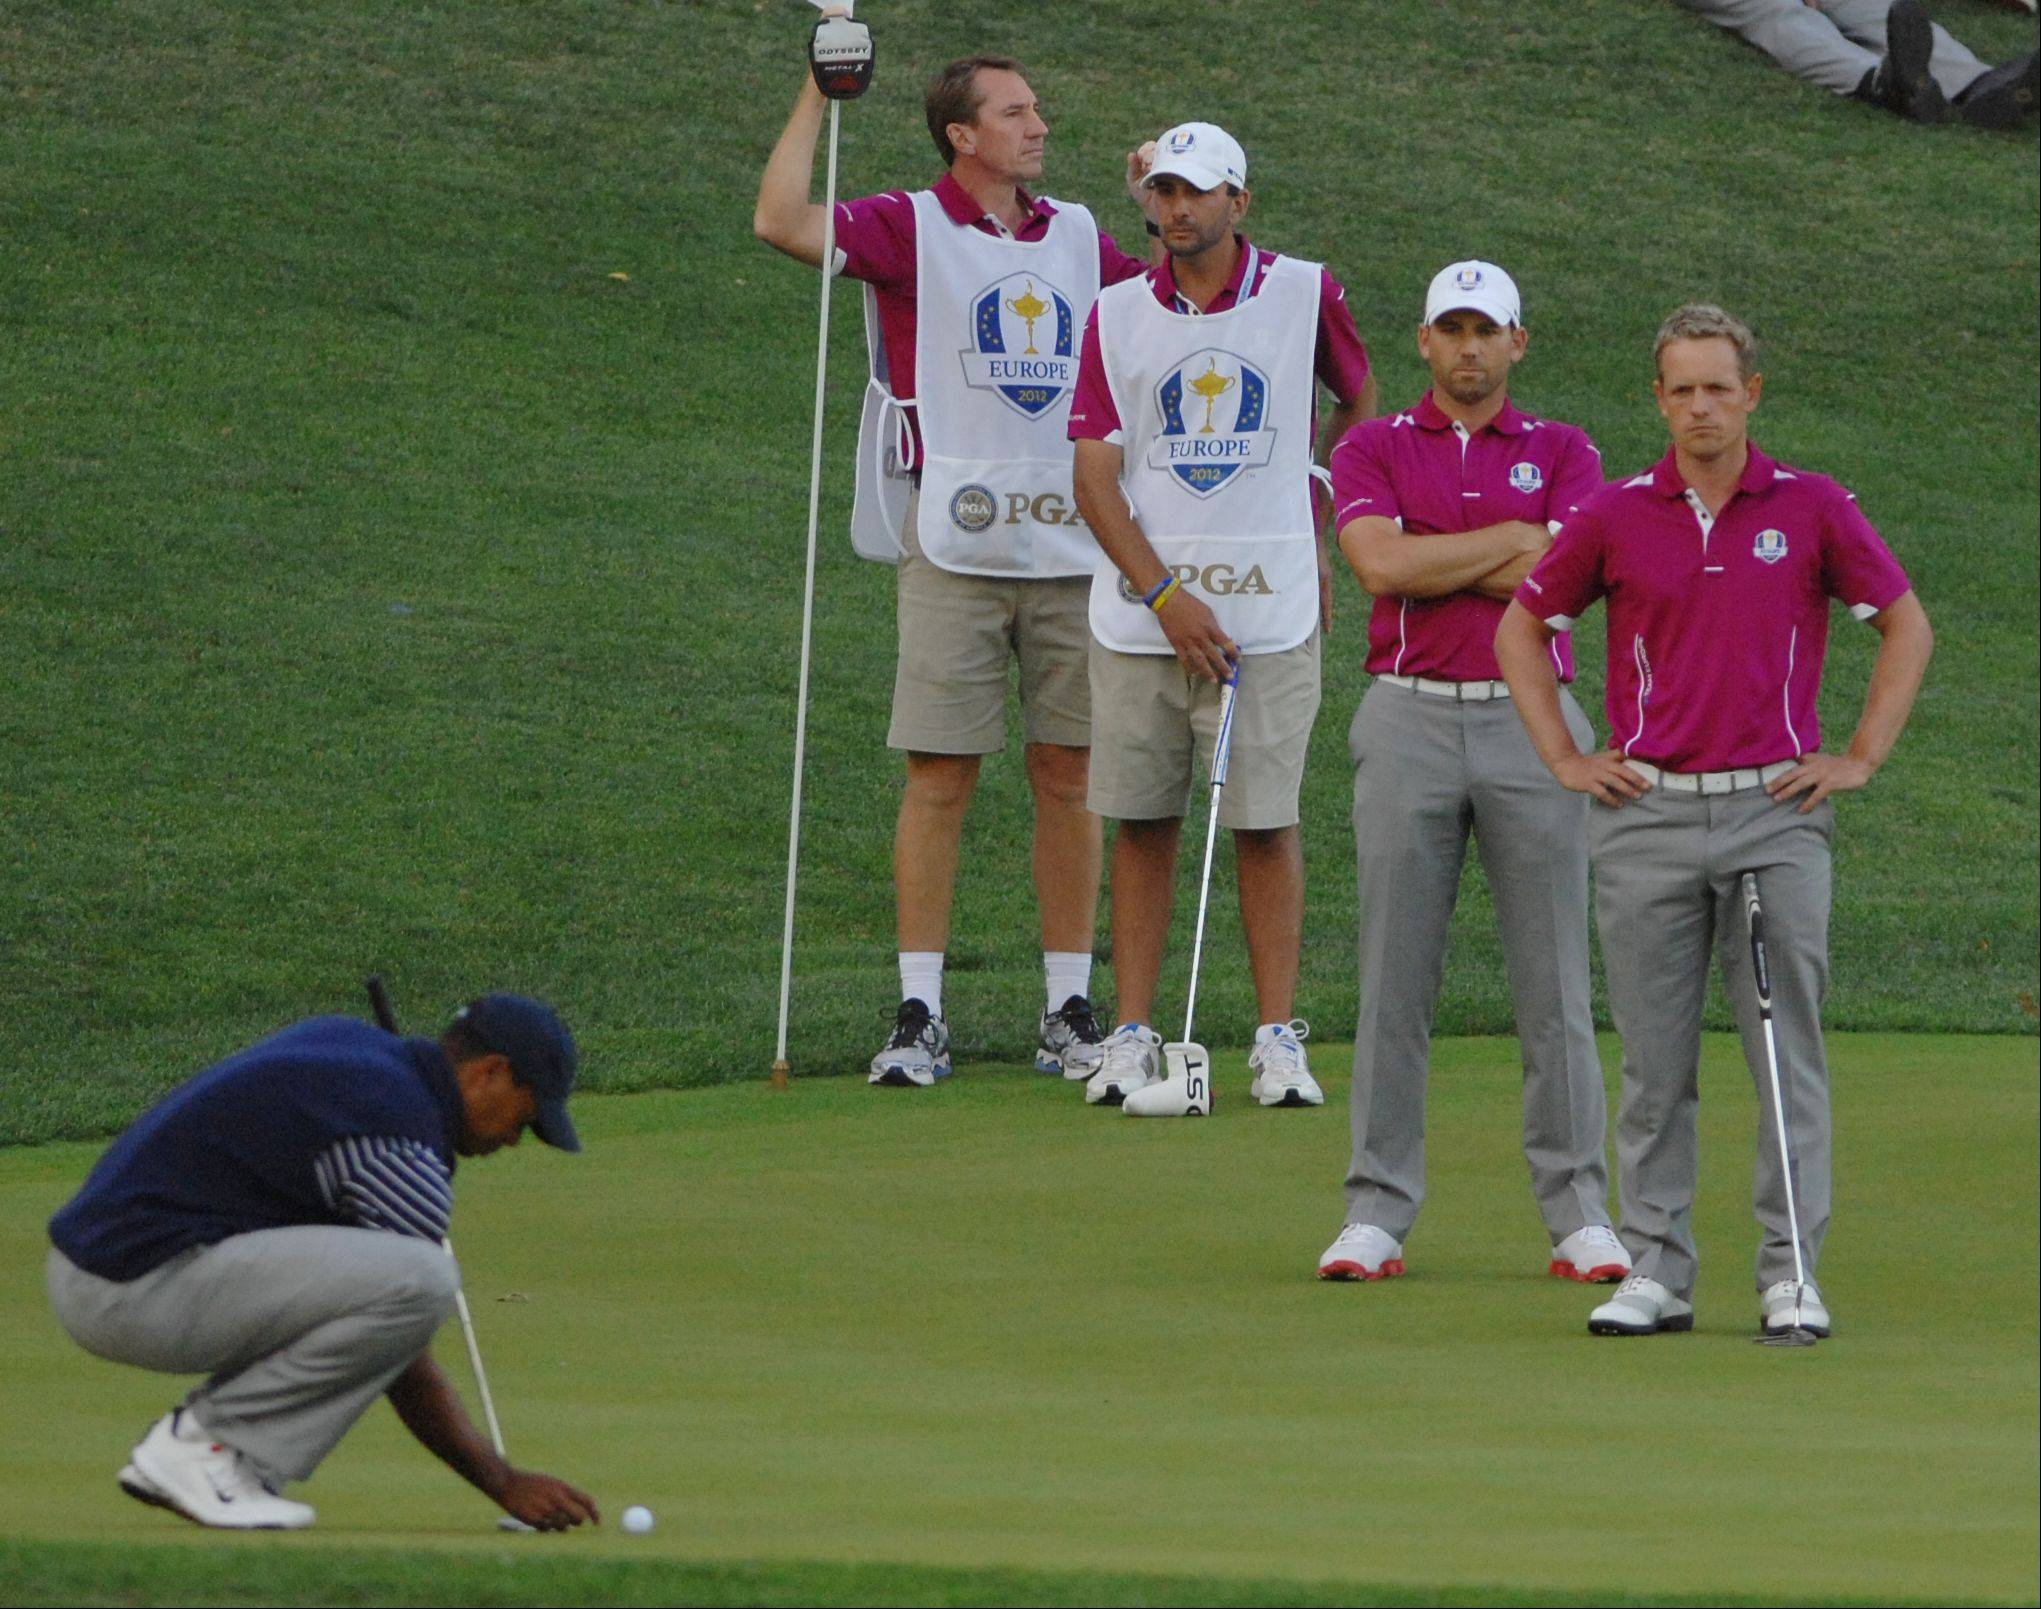 Team Eurorpe's Luke Donald, right, and Sergio Garcia keep a close eye on Tiger Woods as he lines up his birdie putt on 17 Saturday afternoon on day 2 of the 2012 Ryder Cup at Medinah Country Club.